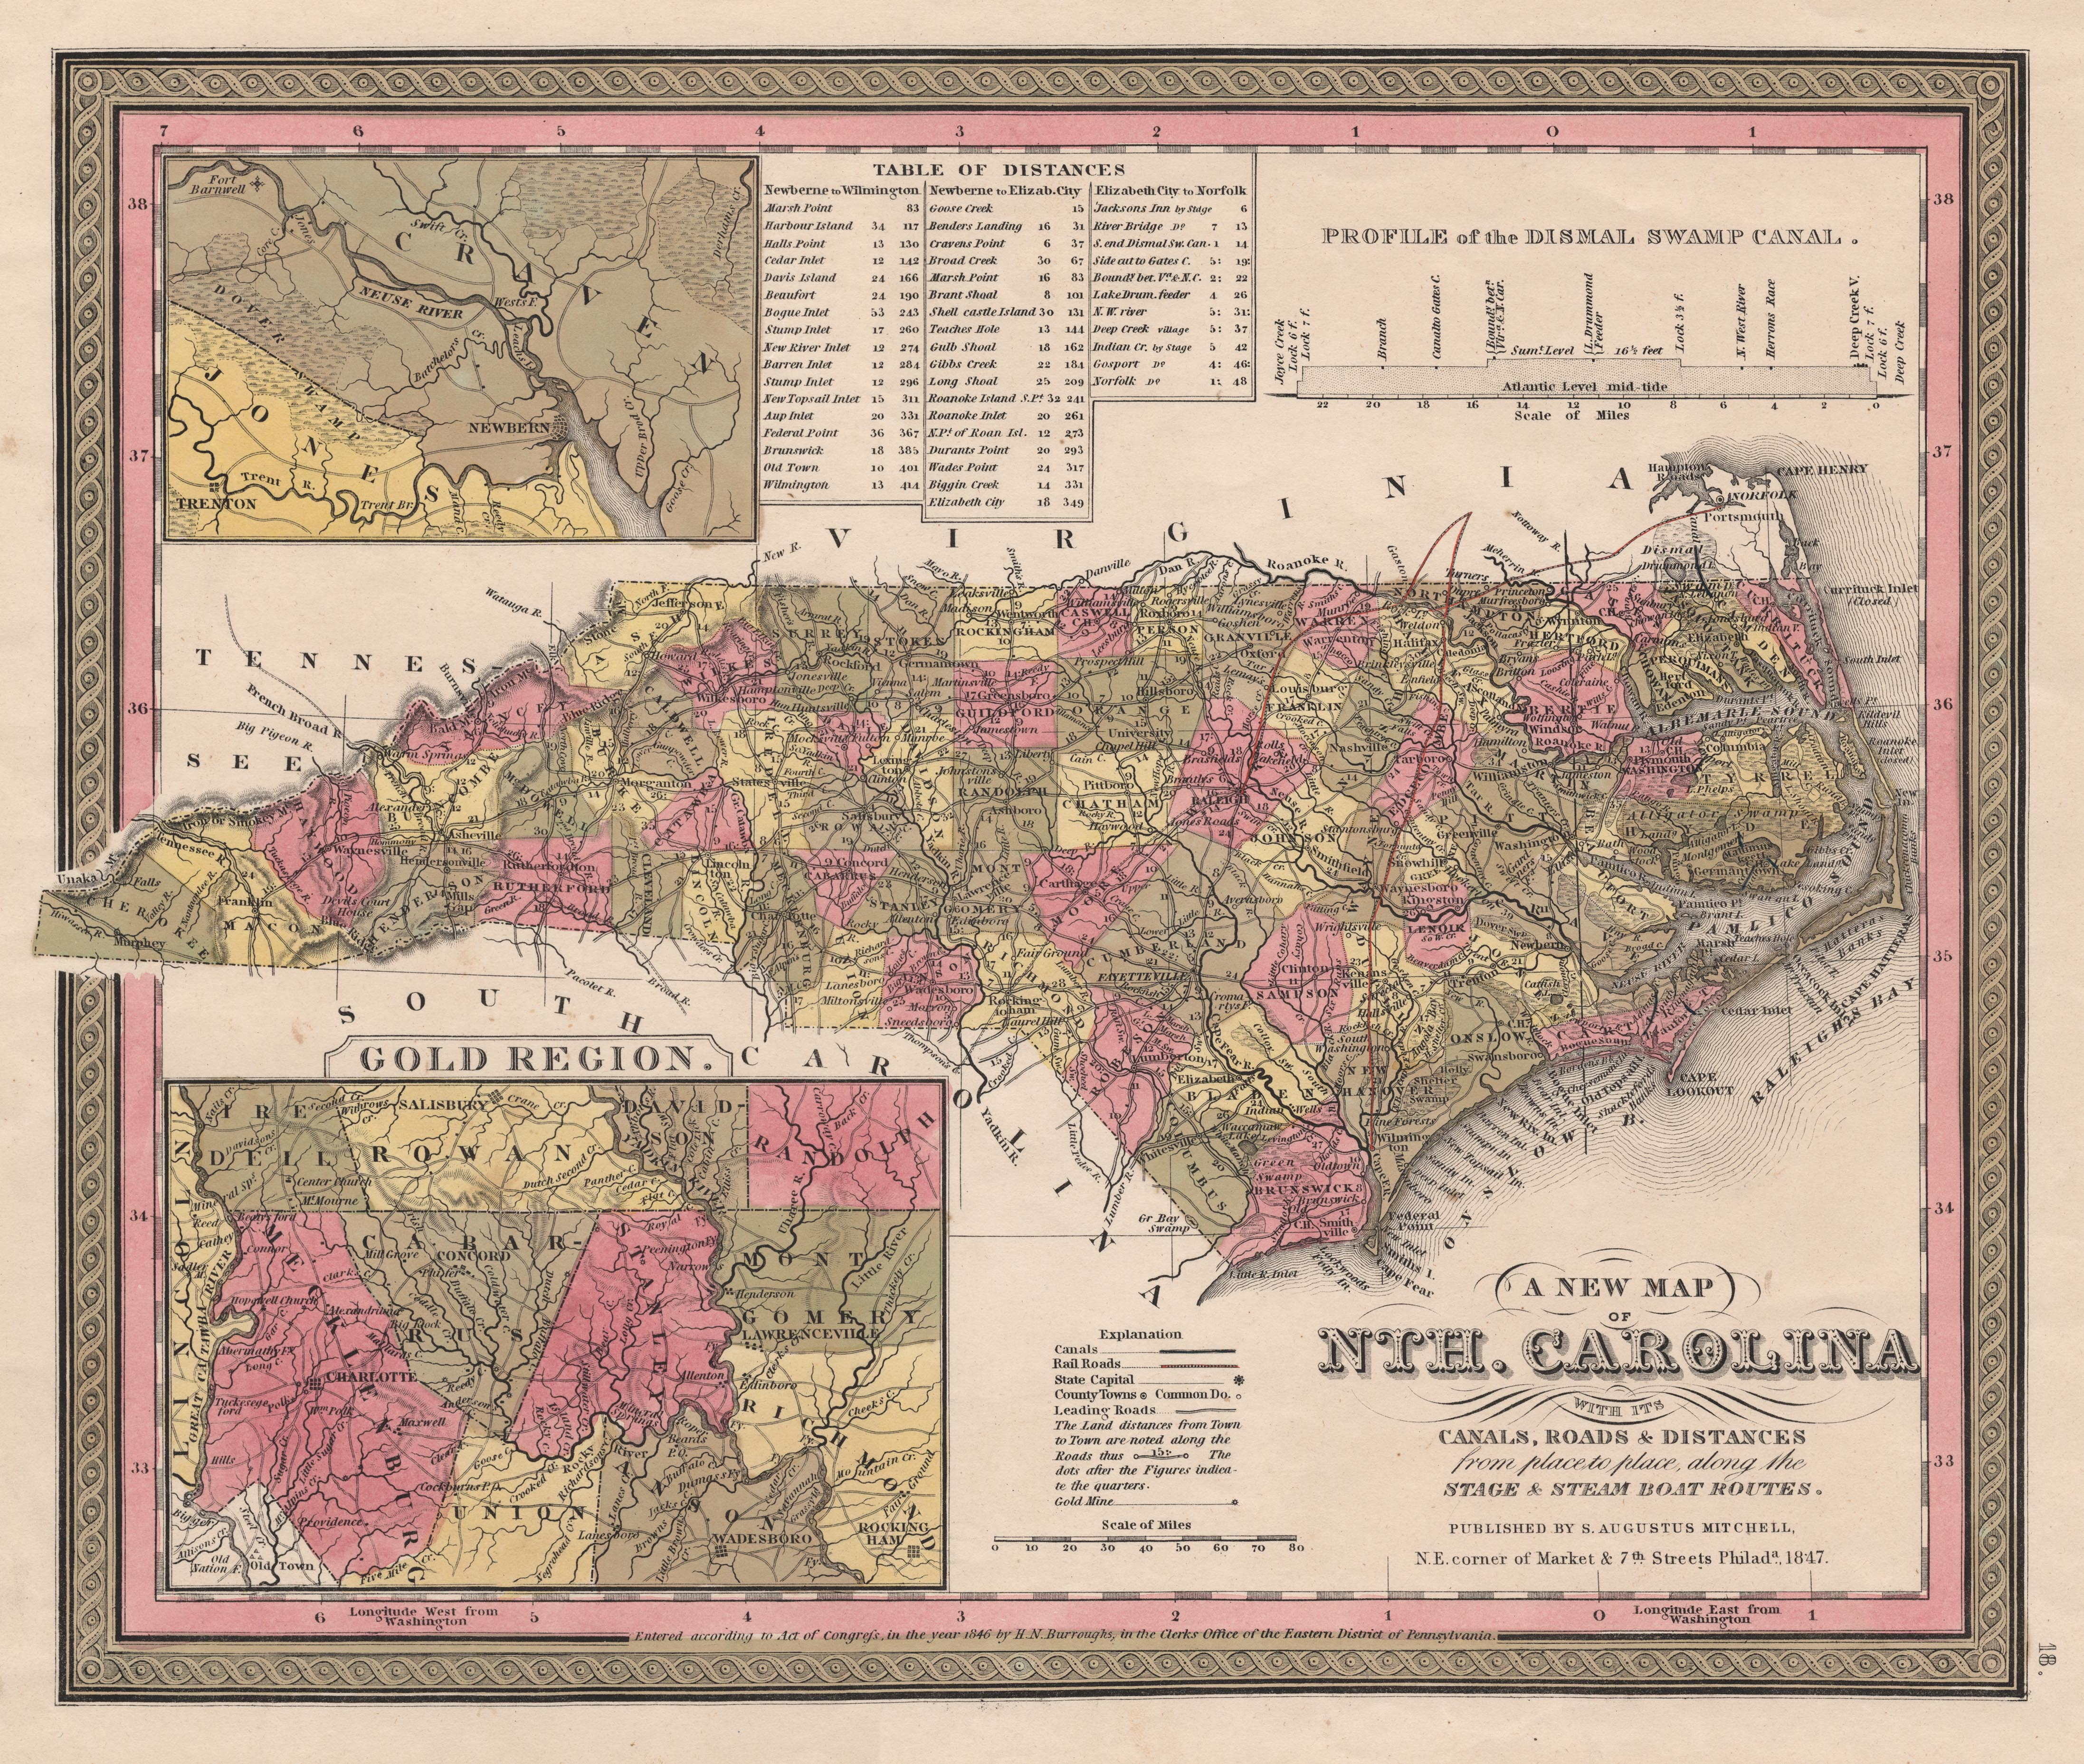 File:Map of the State of North Carolina showing the gold